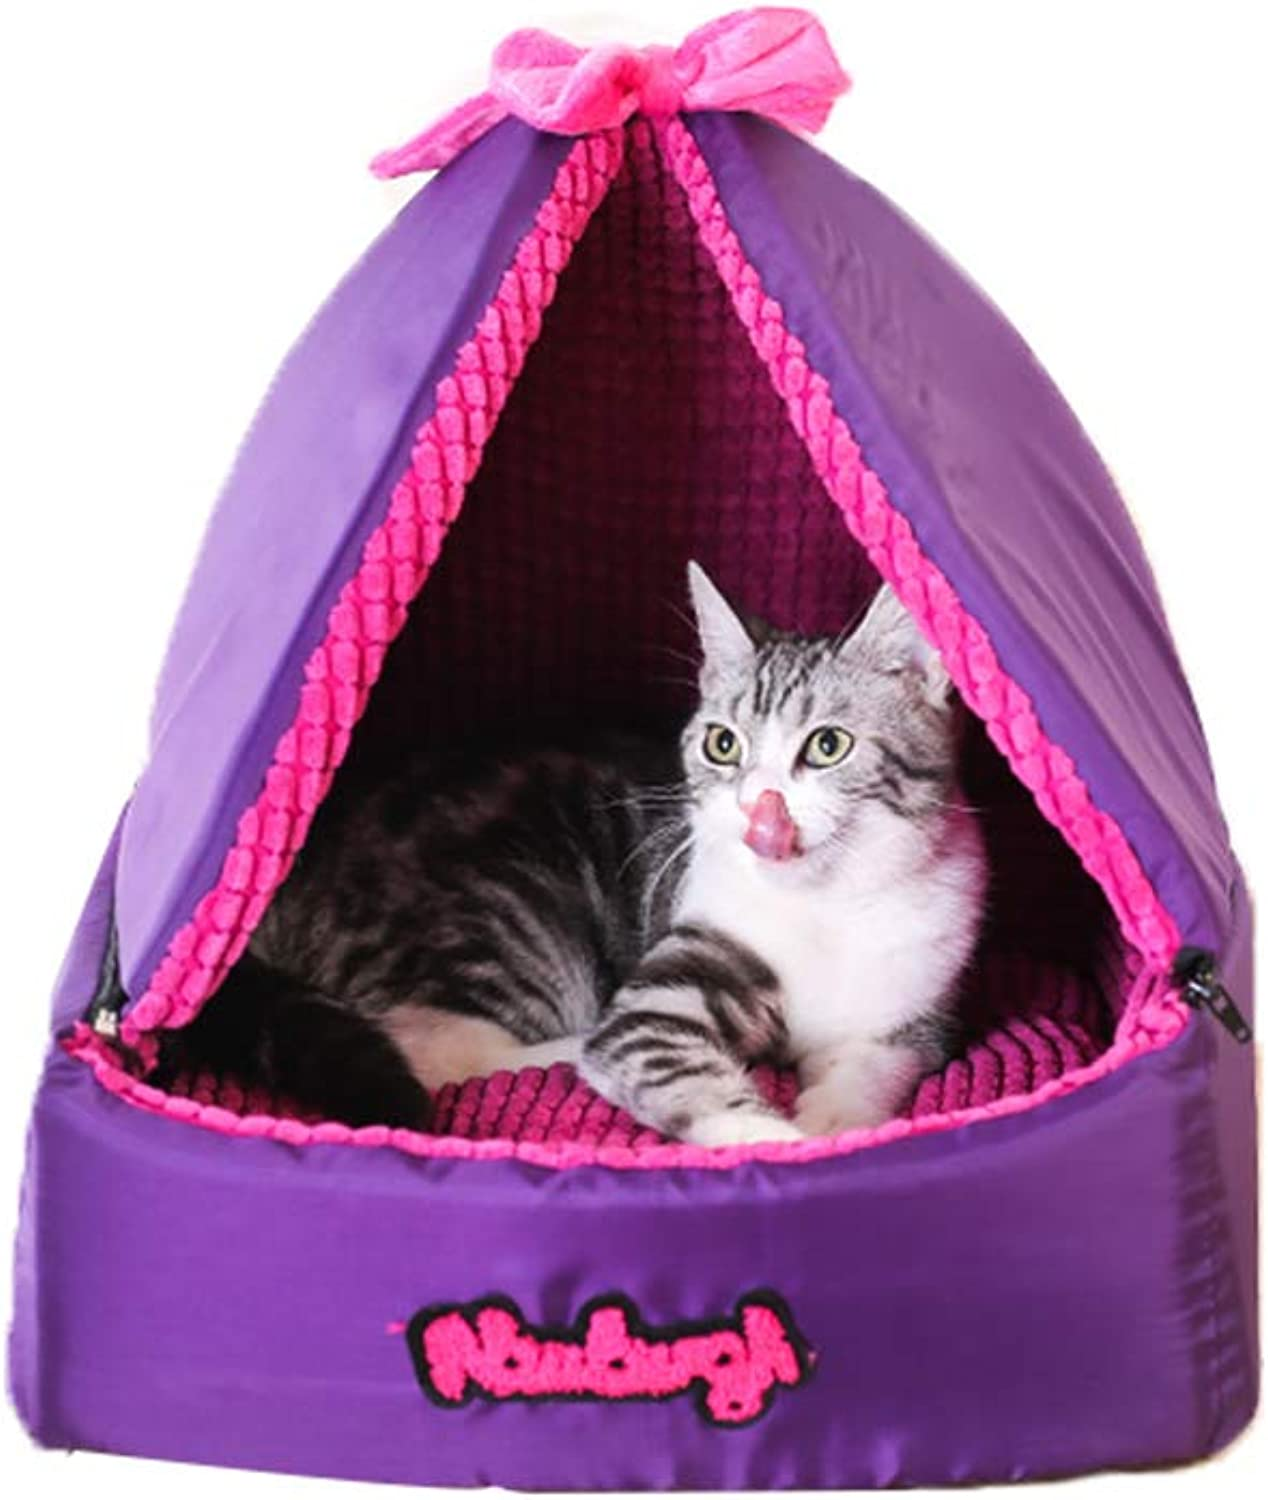 ZYear Purple Kennel Modern Cat House with Detachable Tent Roof Fully Removable & Washable for Small Cats Medium Dogs